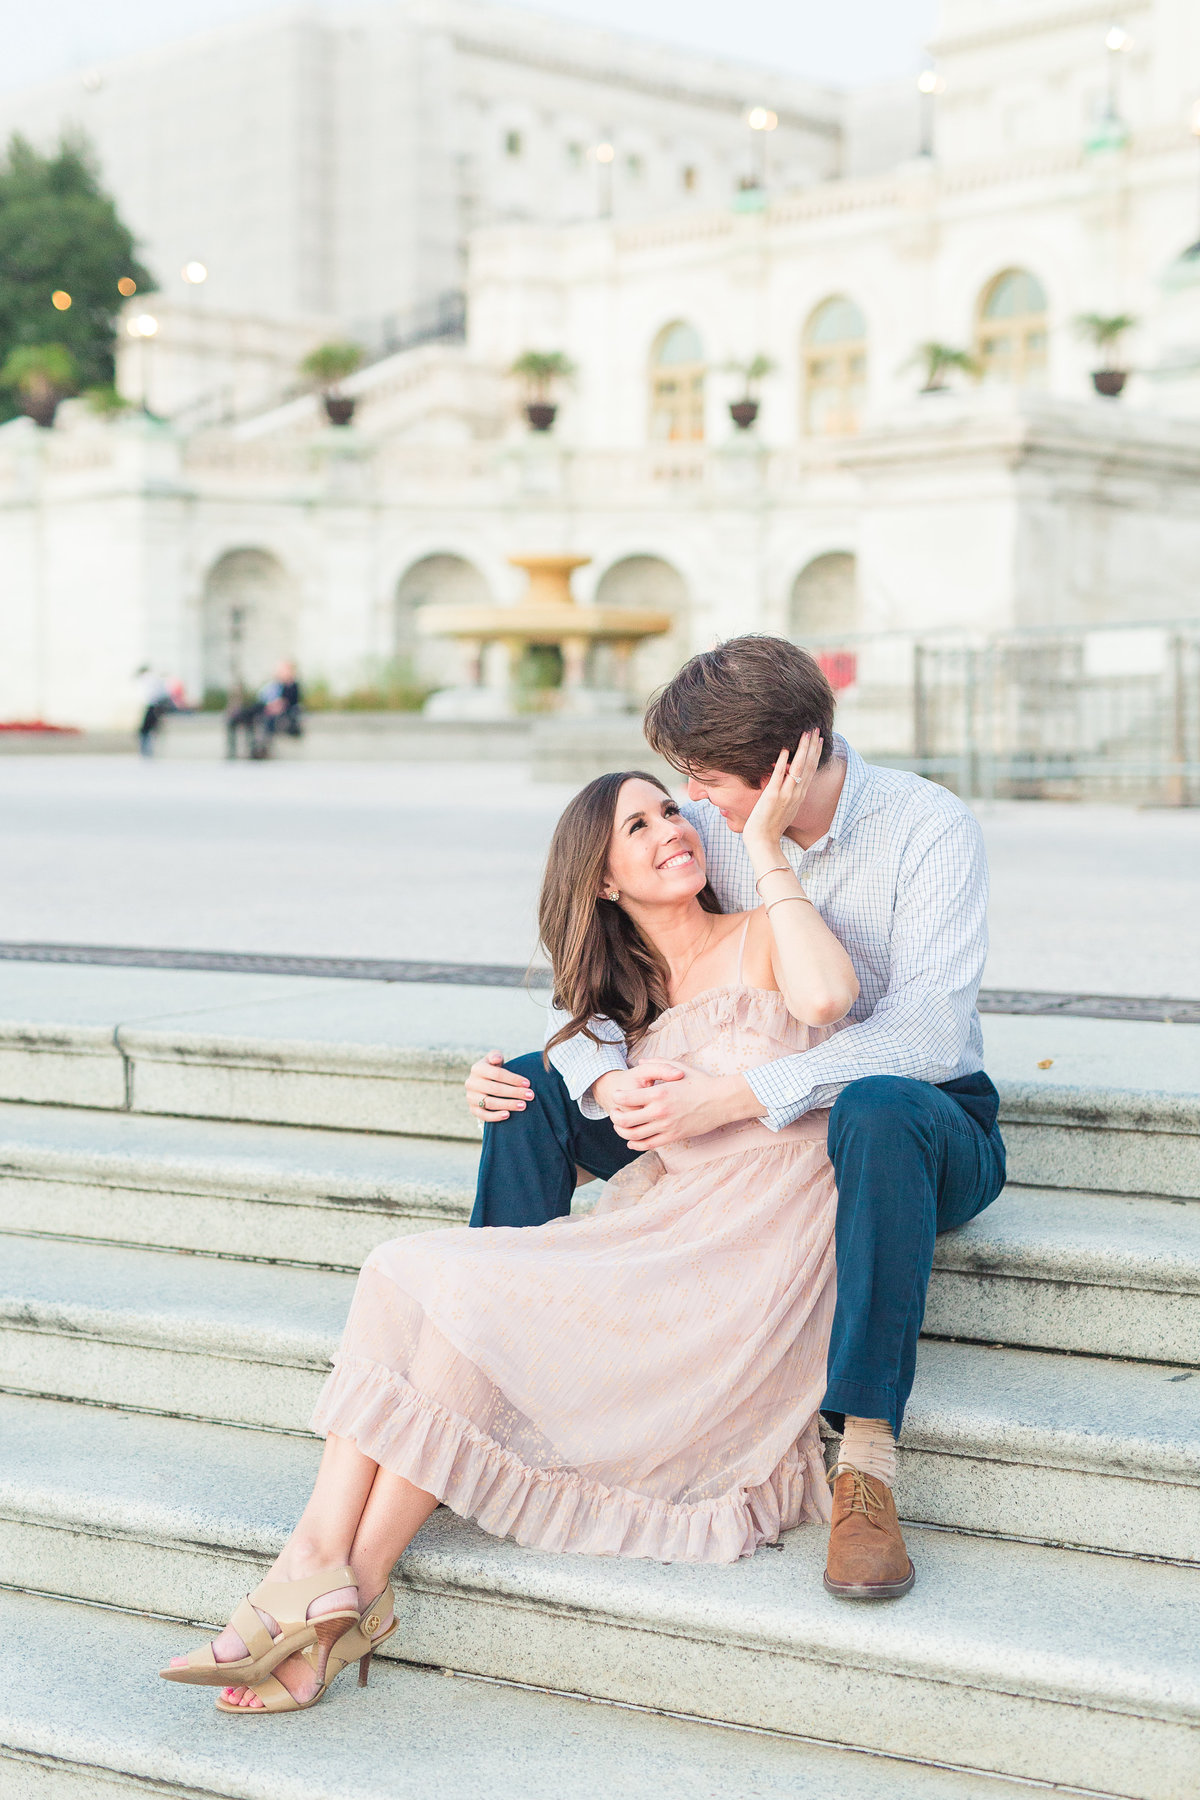 Cherie+Zachengagement2017 (11 of 11)